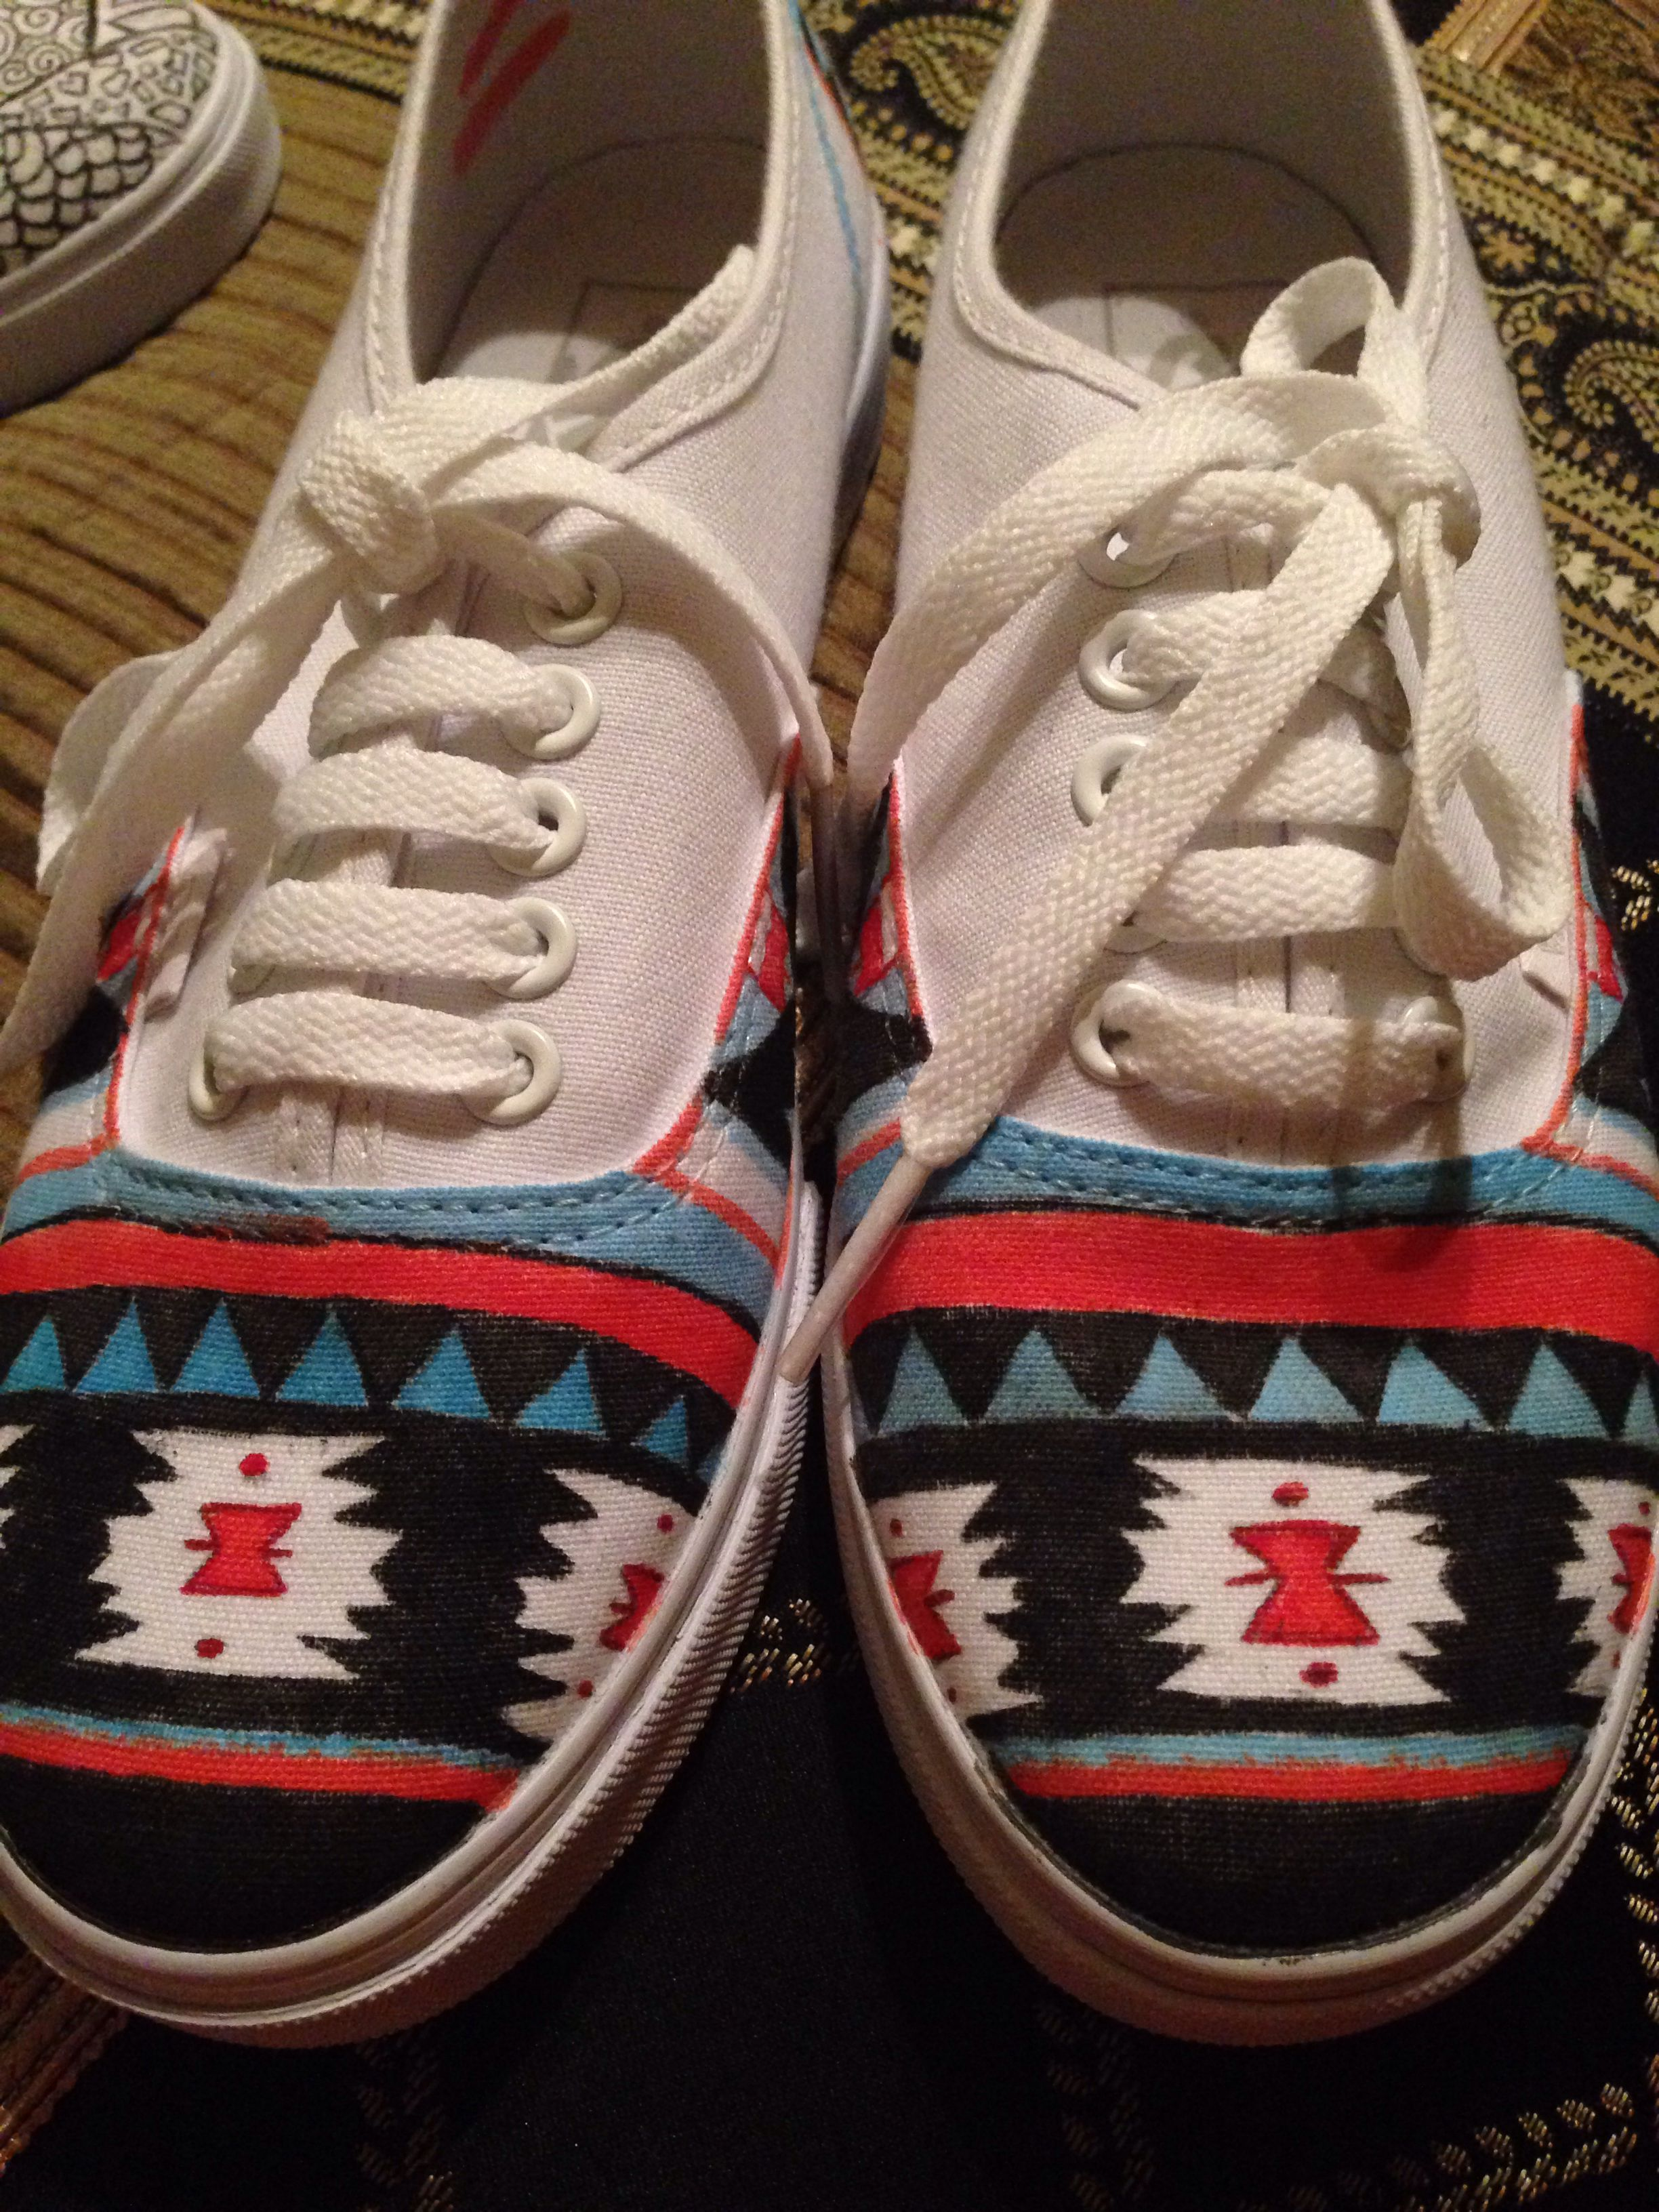 Diy white vans shoes decorated with tribal print